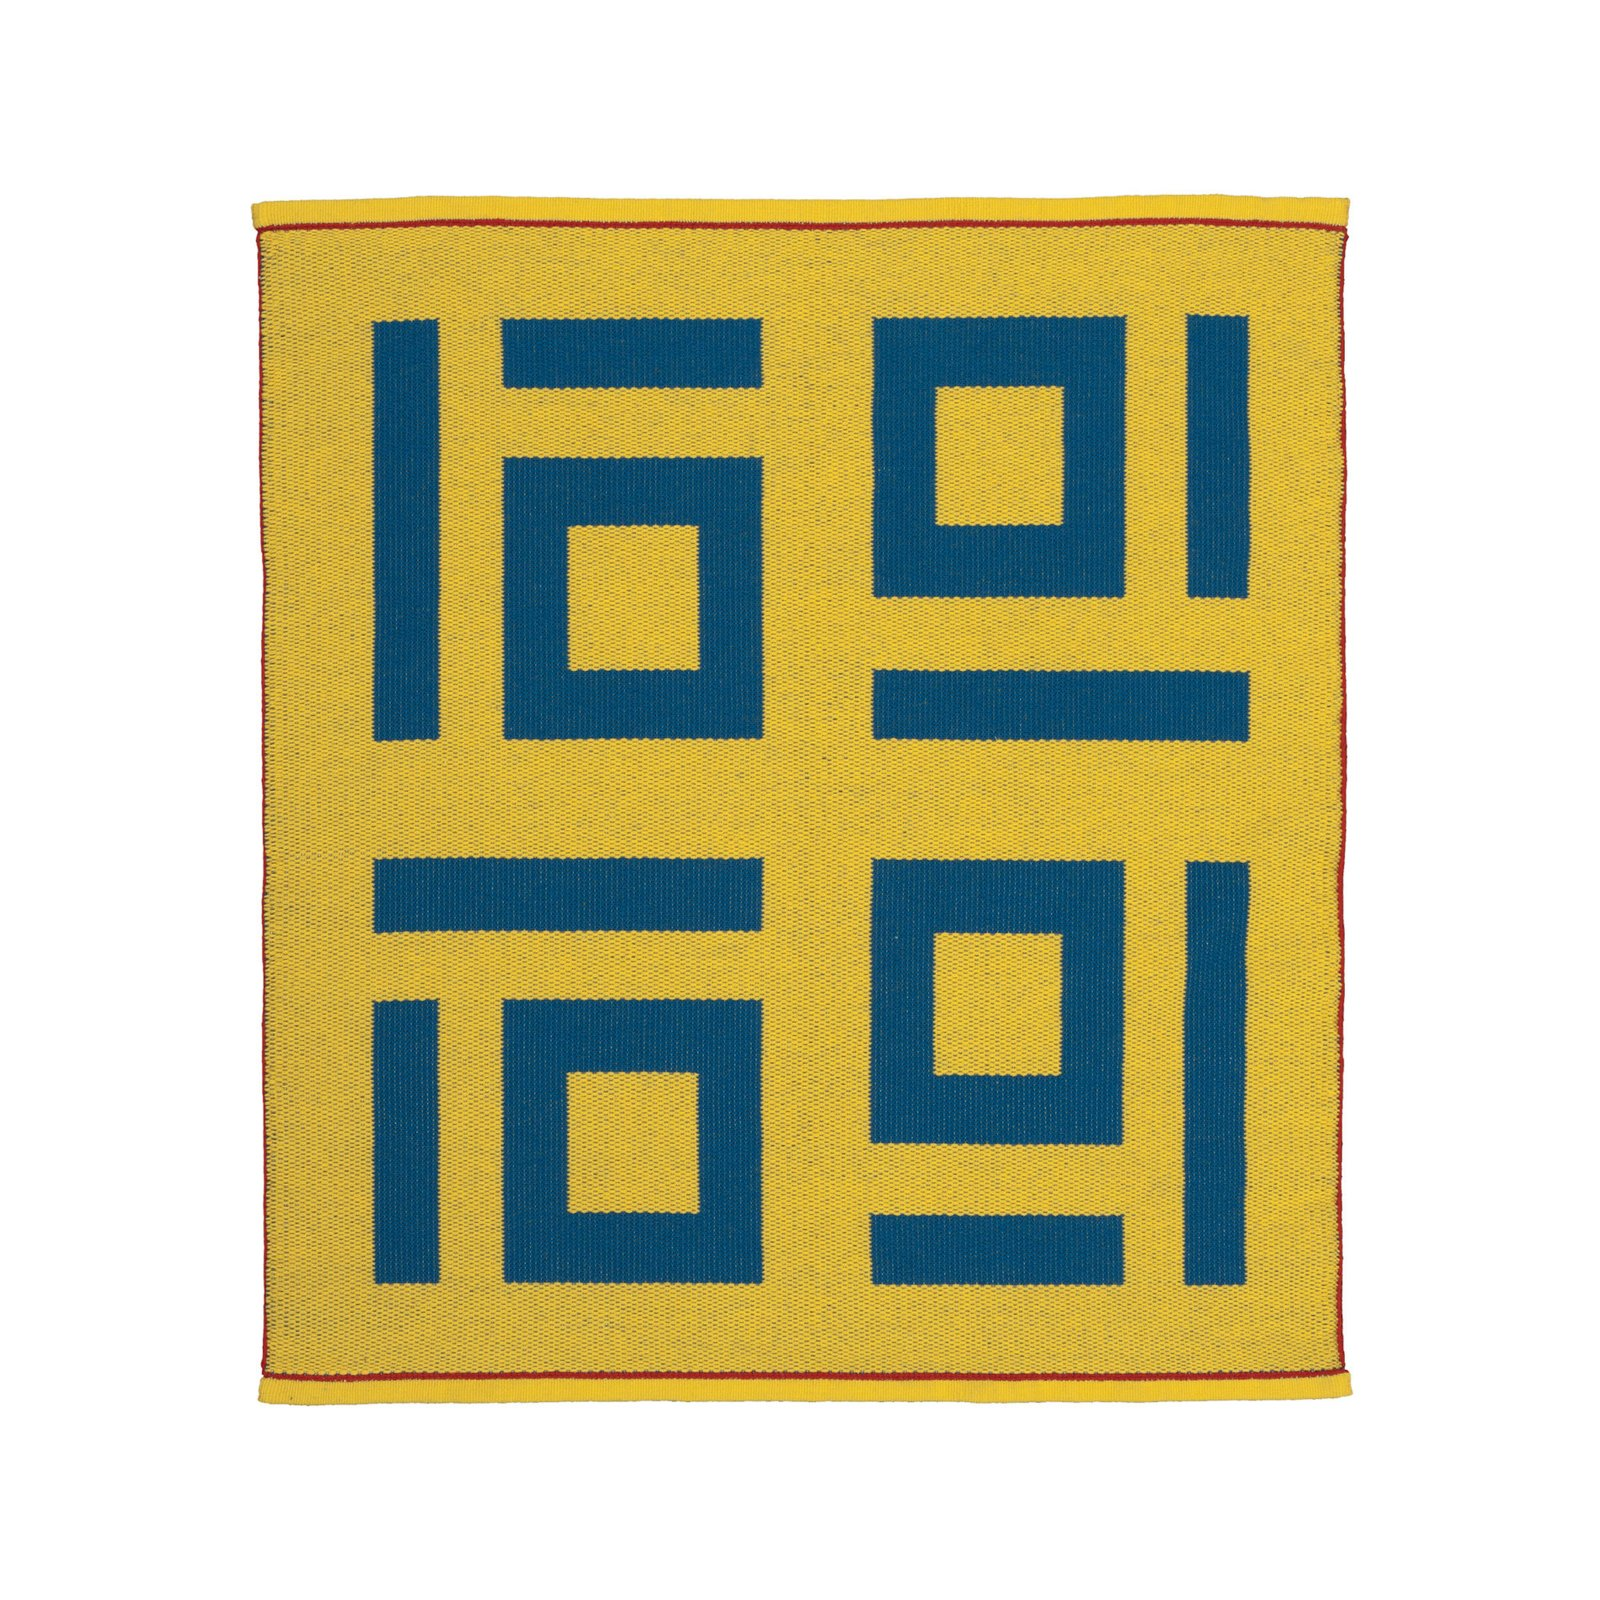 "Eureka, California  Four Tens Rug by Nancy Kennedy Designs, $2,000. Nancy Kennedy uses a custom stand-up loom to weave what she calls ""art underfoot""—geometric rugs like this reversible wool-and-linen design.  Photo 5 of 9 in 9 Modern Designs That Were Born in the USA"